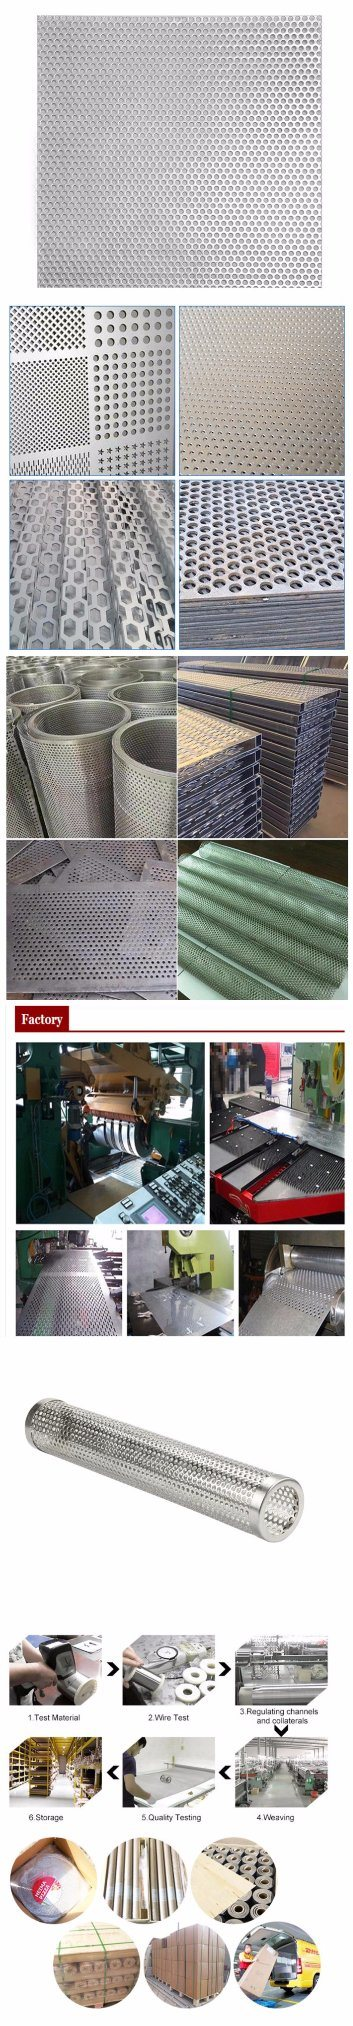 201 Diamond Hole Stainless Steel Perforated Plate